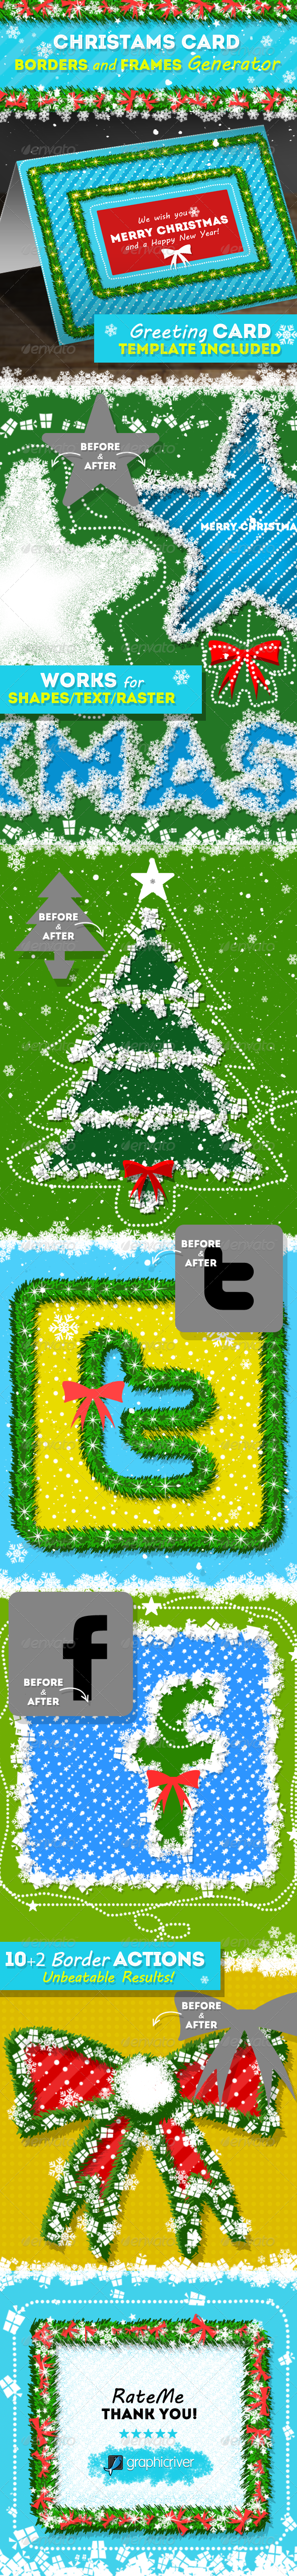 Christmas Card Borders and Frames Generator by psddude | GraphicRiver